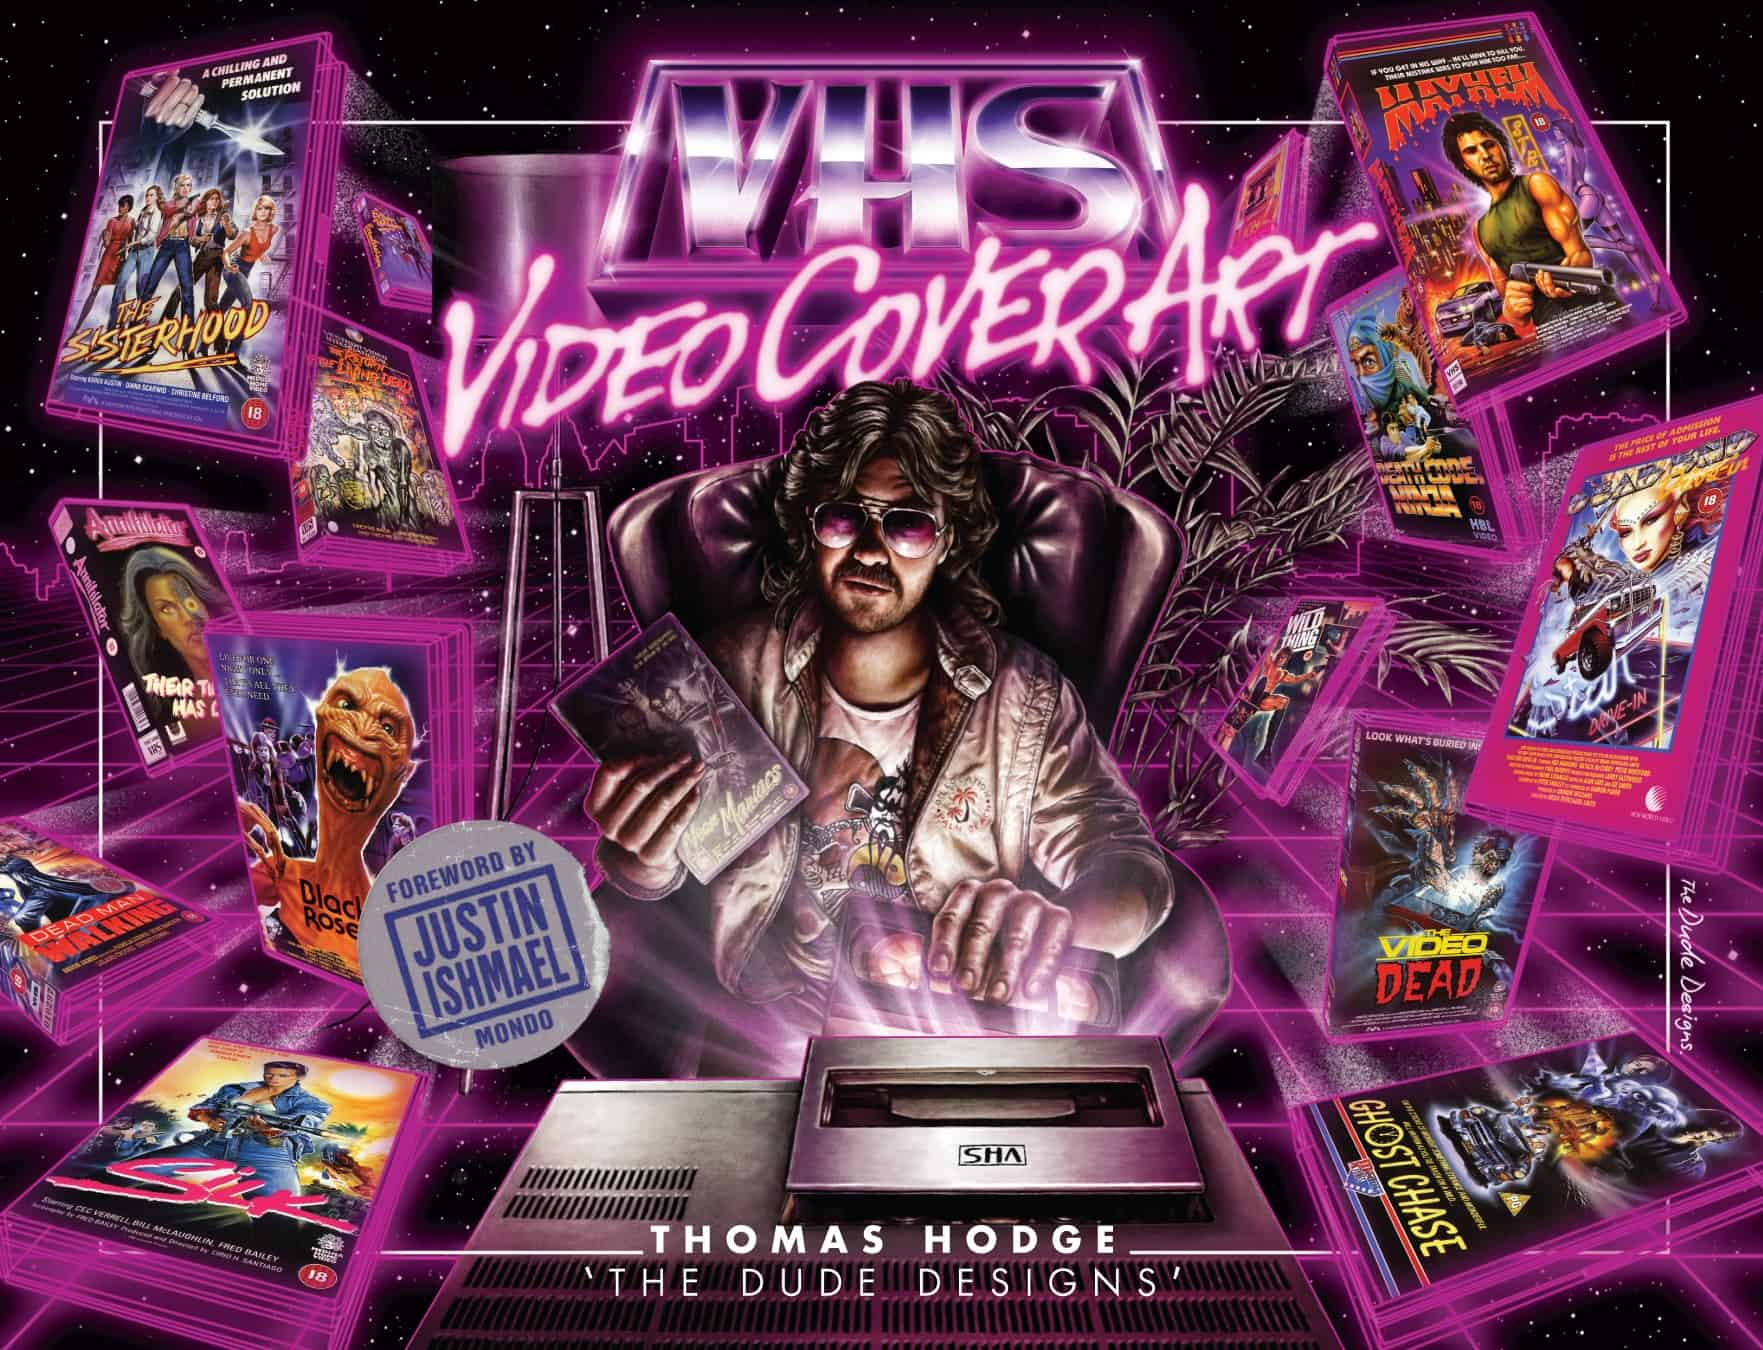 vhsvideo - Upcoming Book Highlights 80s and 90s VHS Video Cover Art